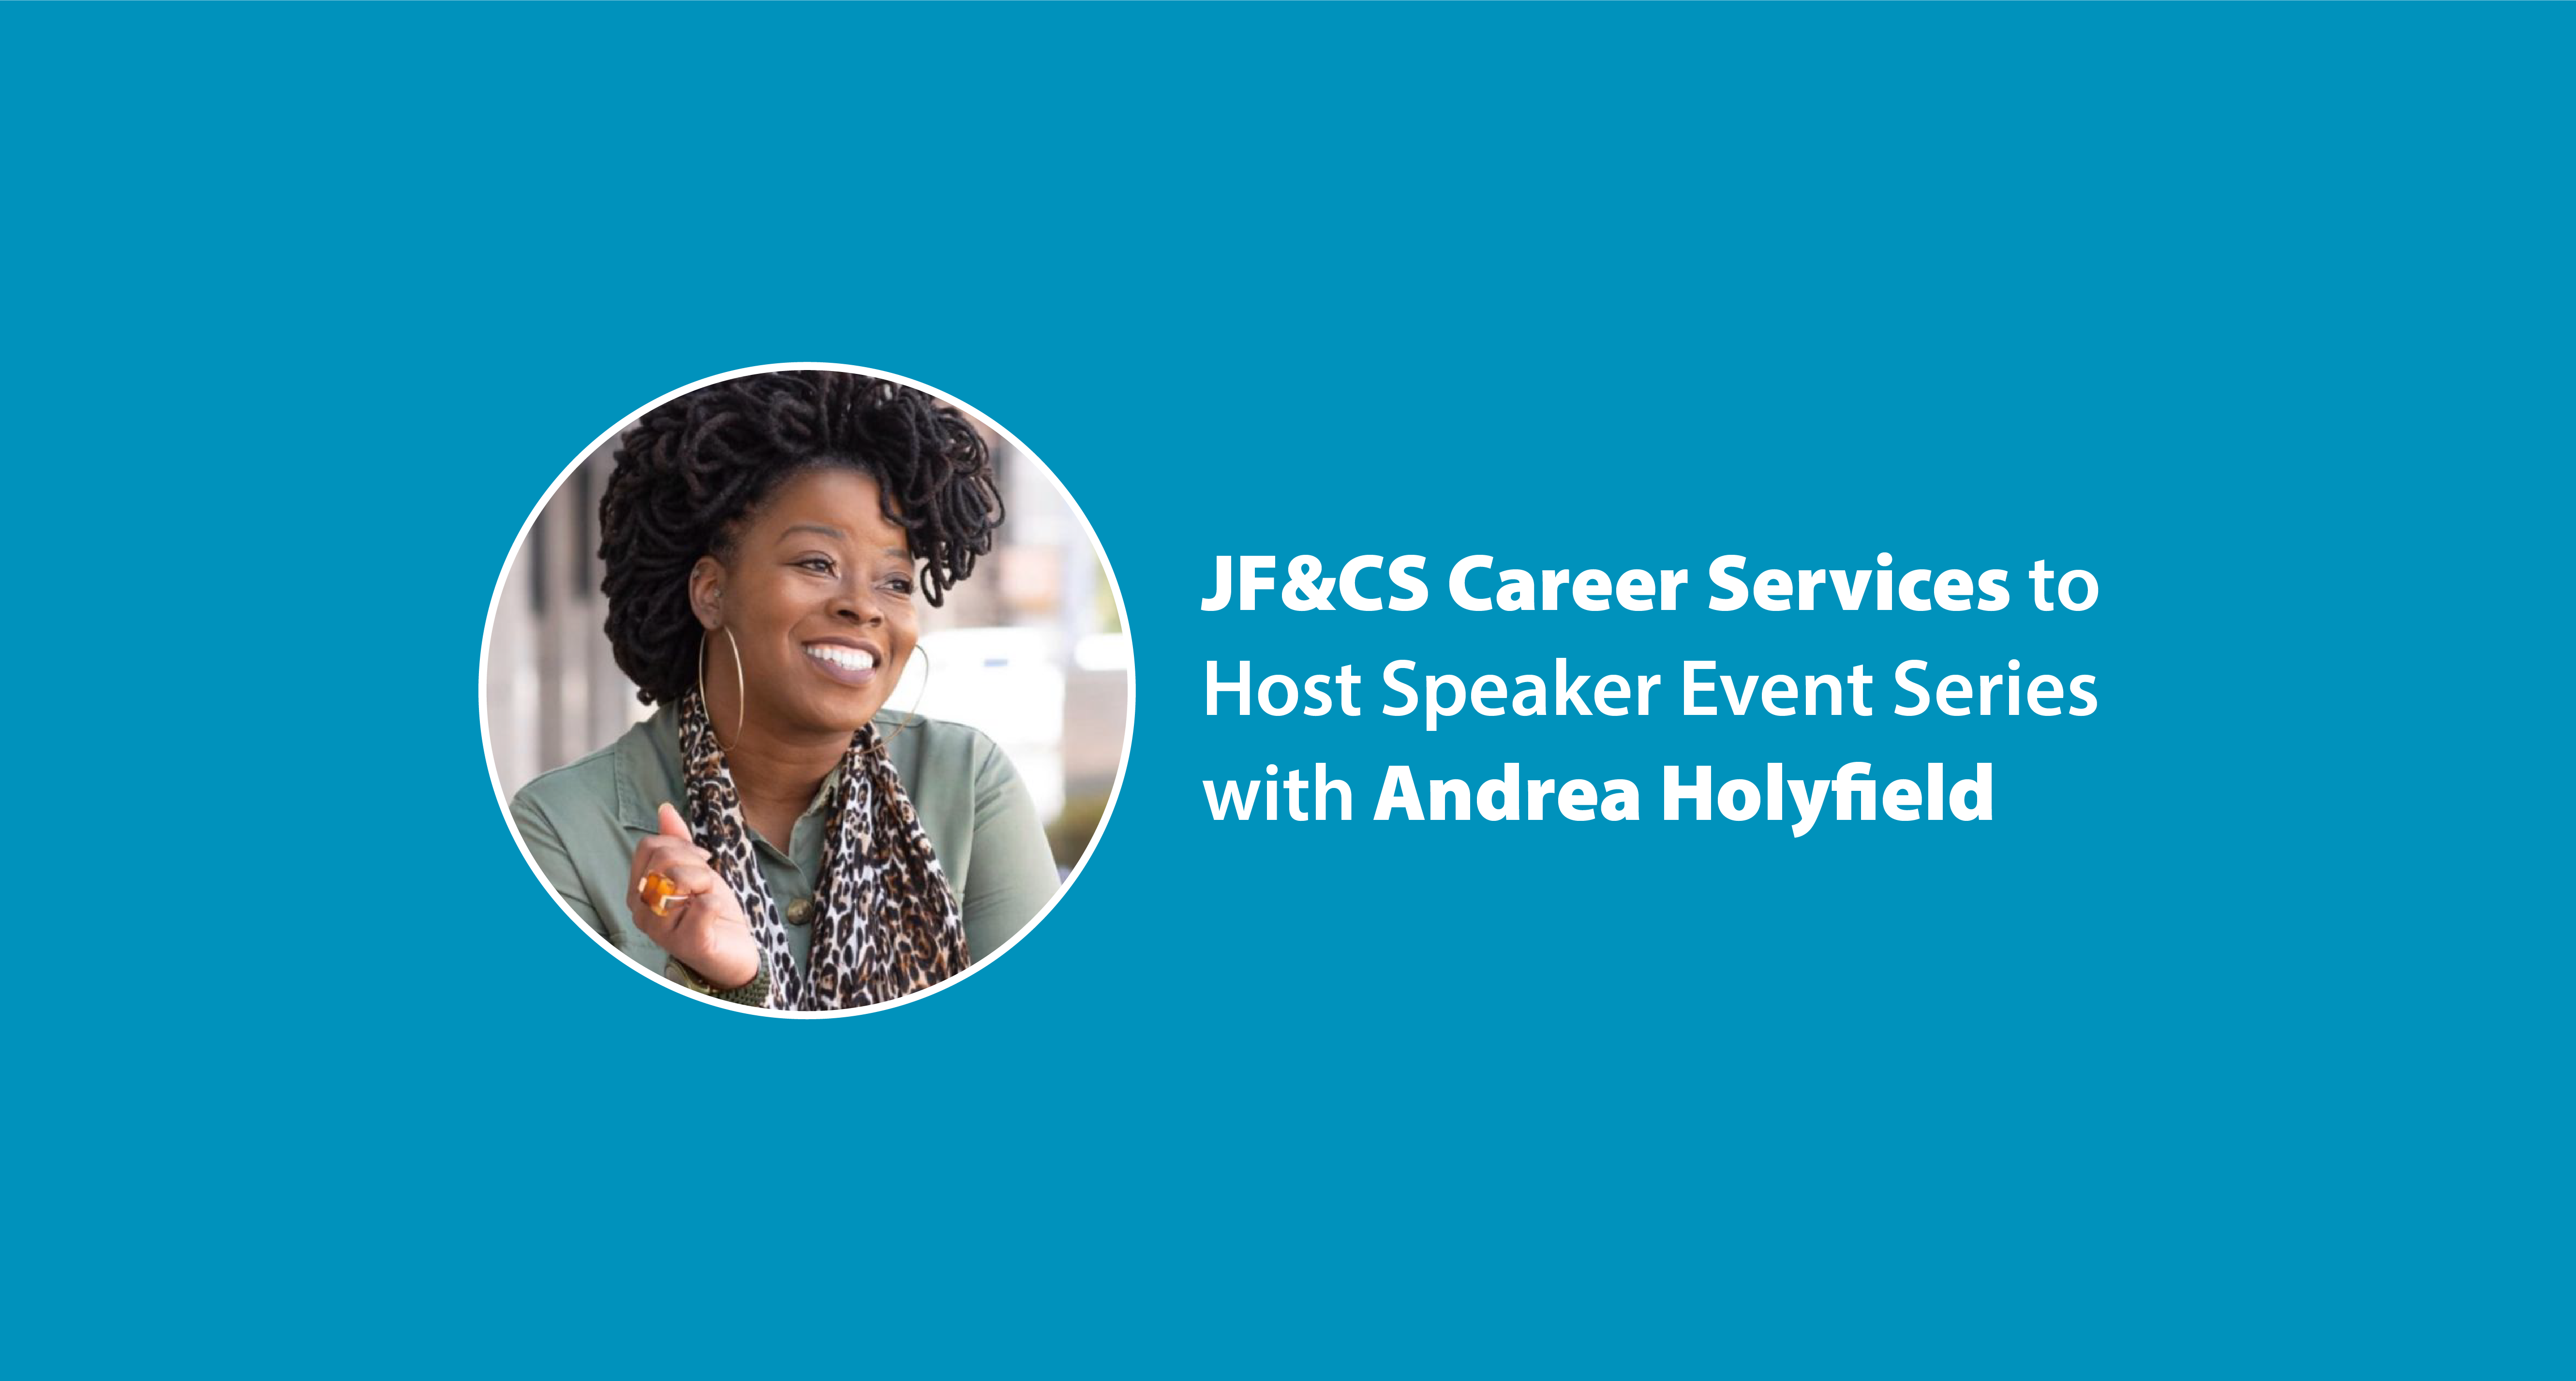 JF&CS Career Services to Host Speaker Event Series with Andrea Holyfield